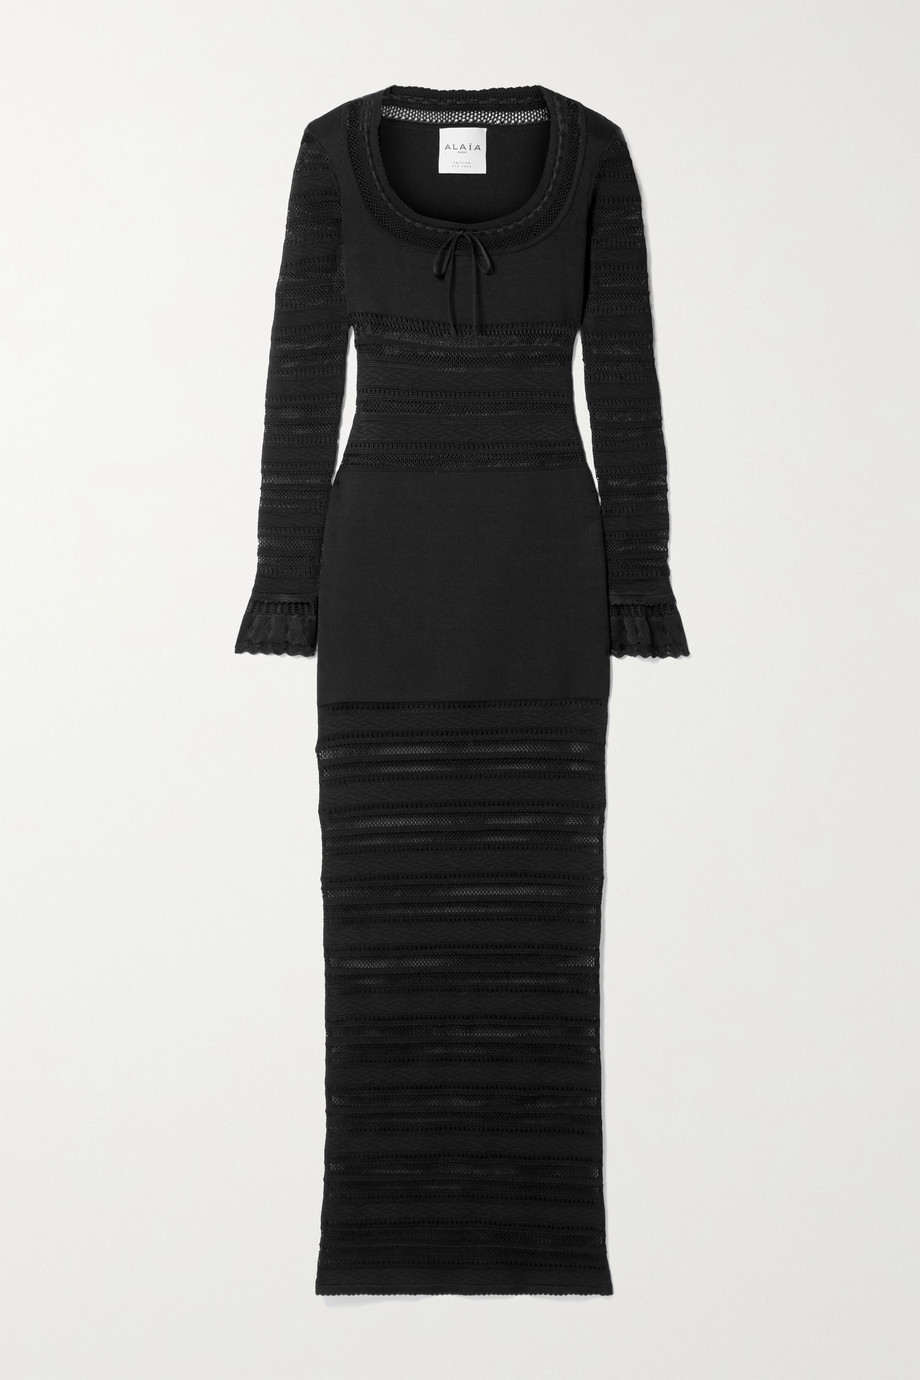 Alaïa Editions bow-detailed open-knit maxi dress